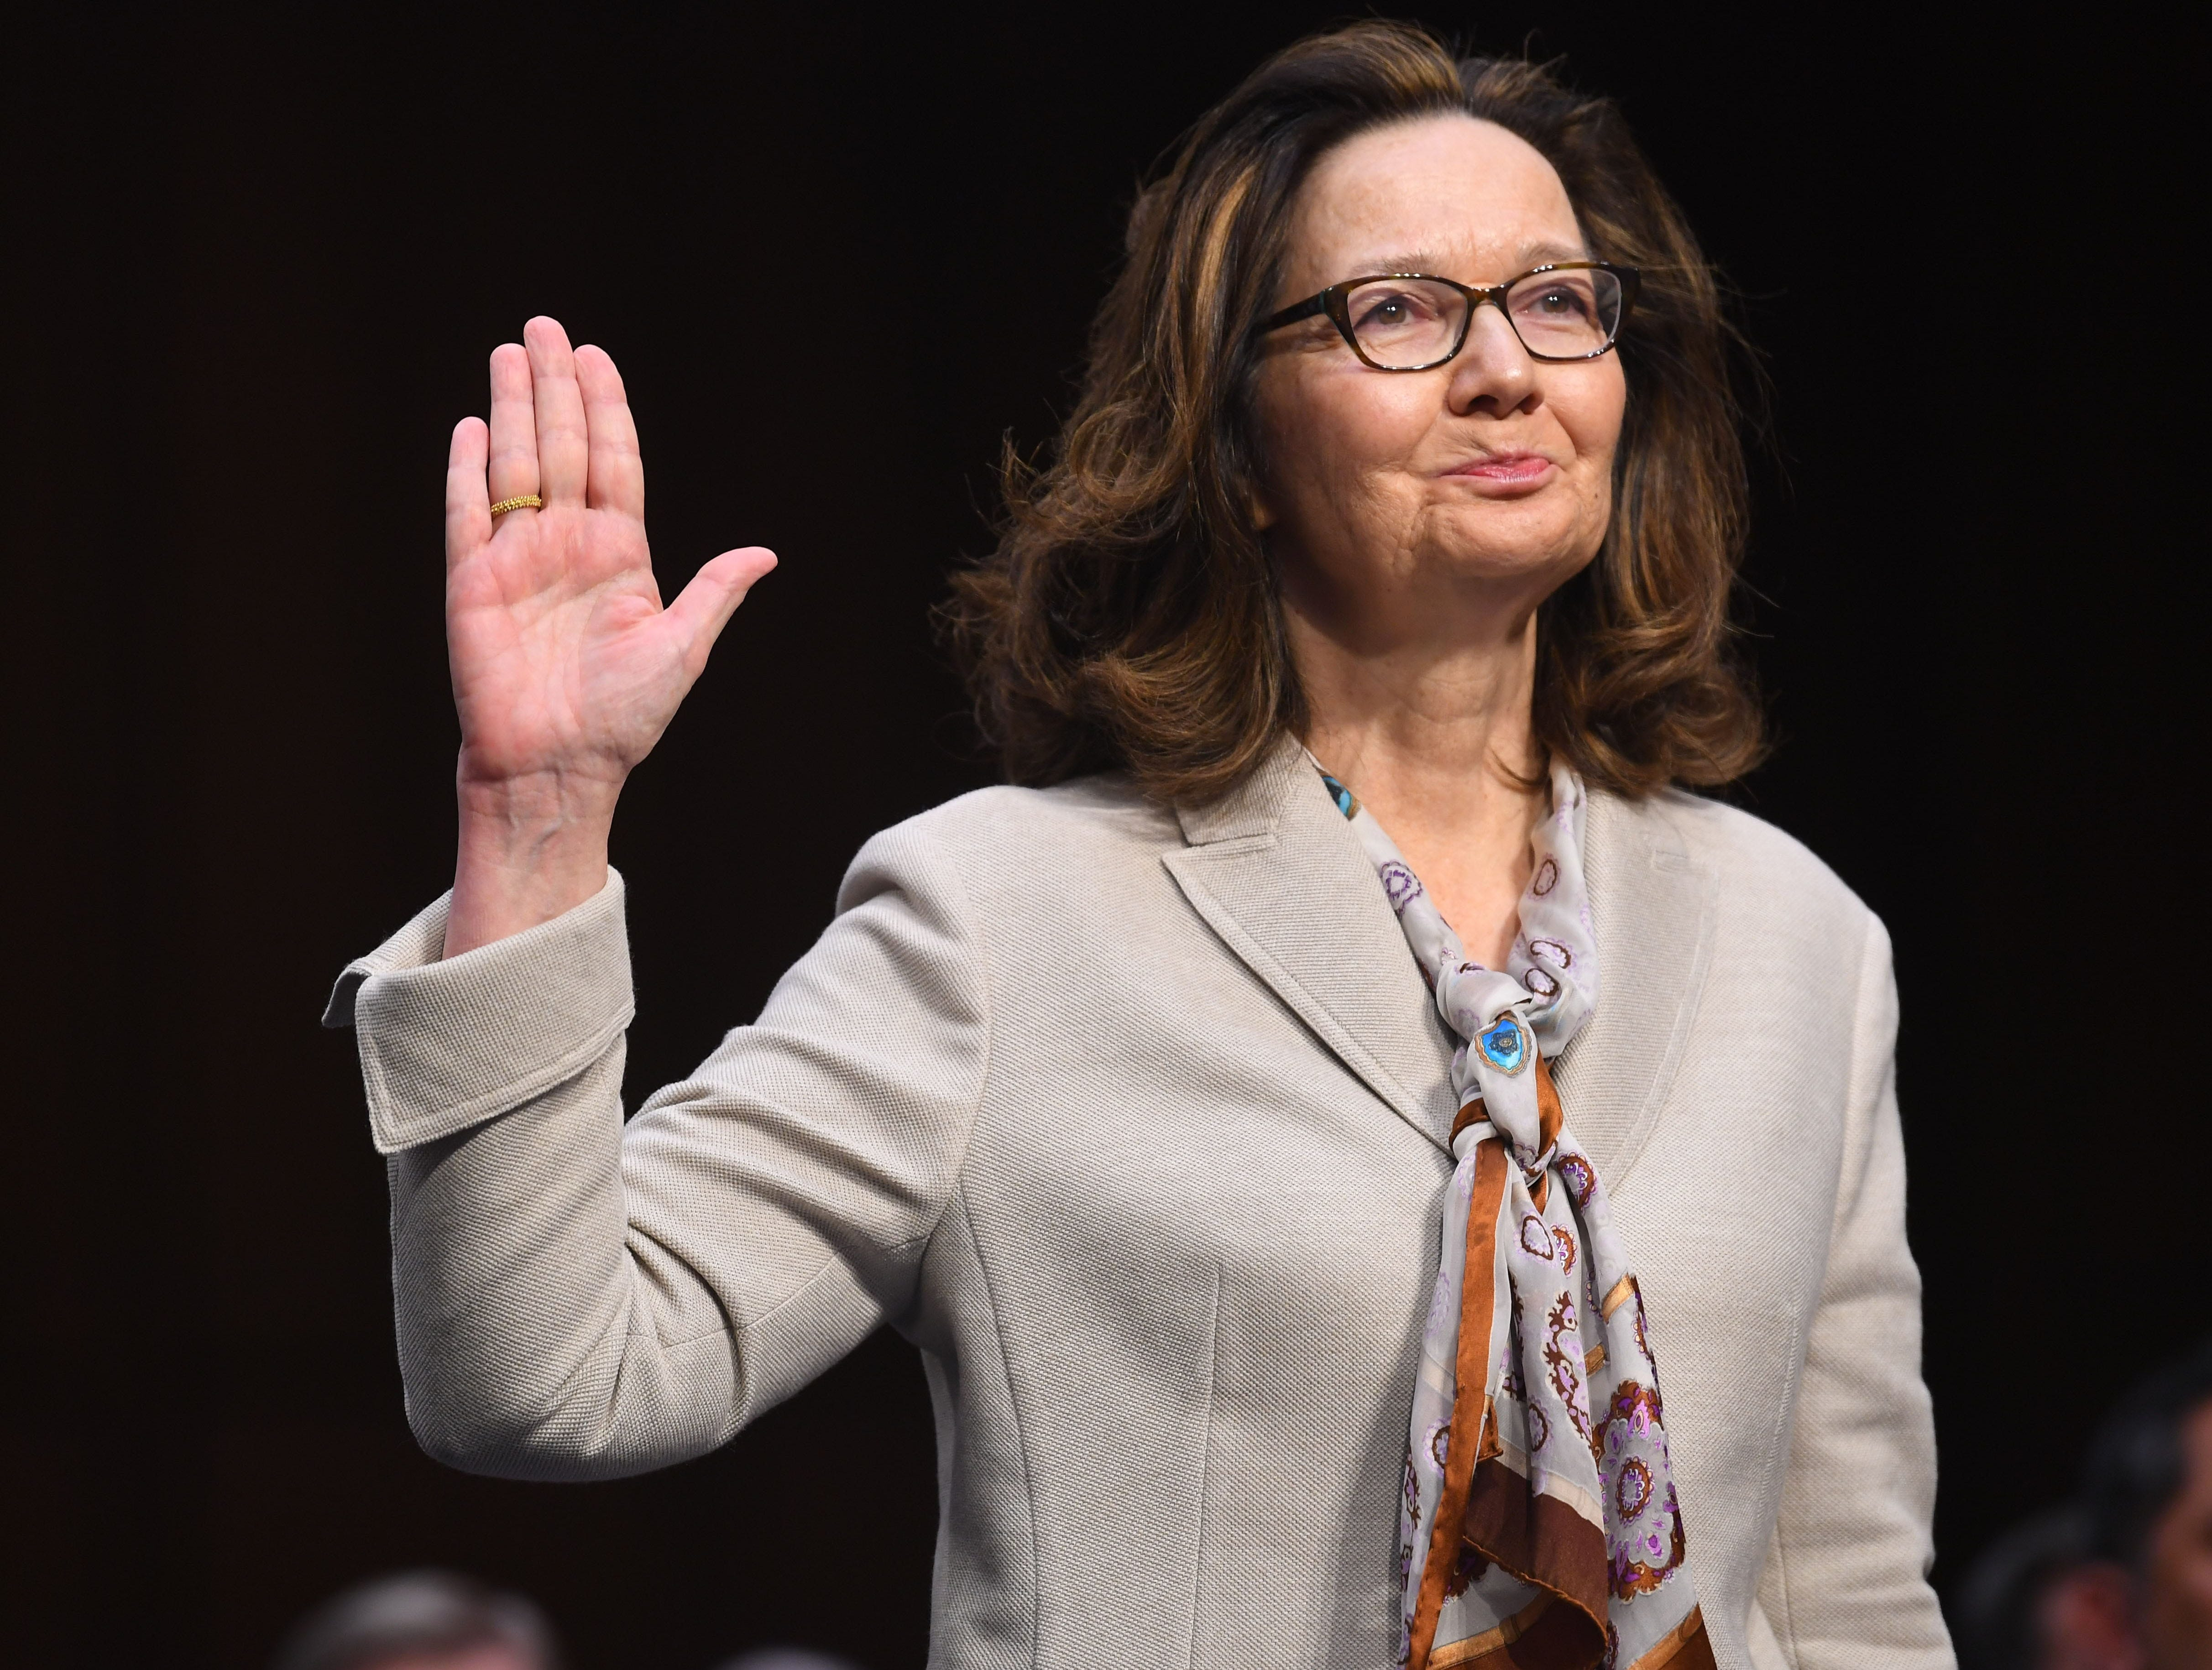 Gina Haspel testifies in front of the U.S. Senate Select Committee on Intelligence during her confirmation hearing March 13, 2018 in Washington.  President Trump nominated Haspel to be CIA Director, replacing Mike Pompeo, the current Secretary of Sta